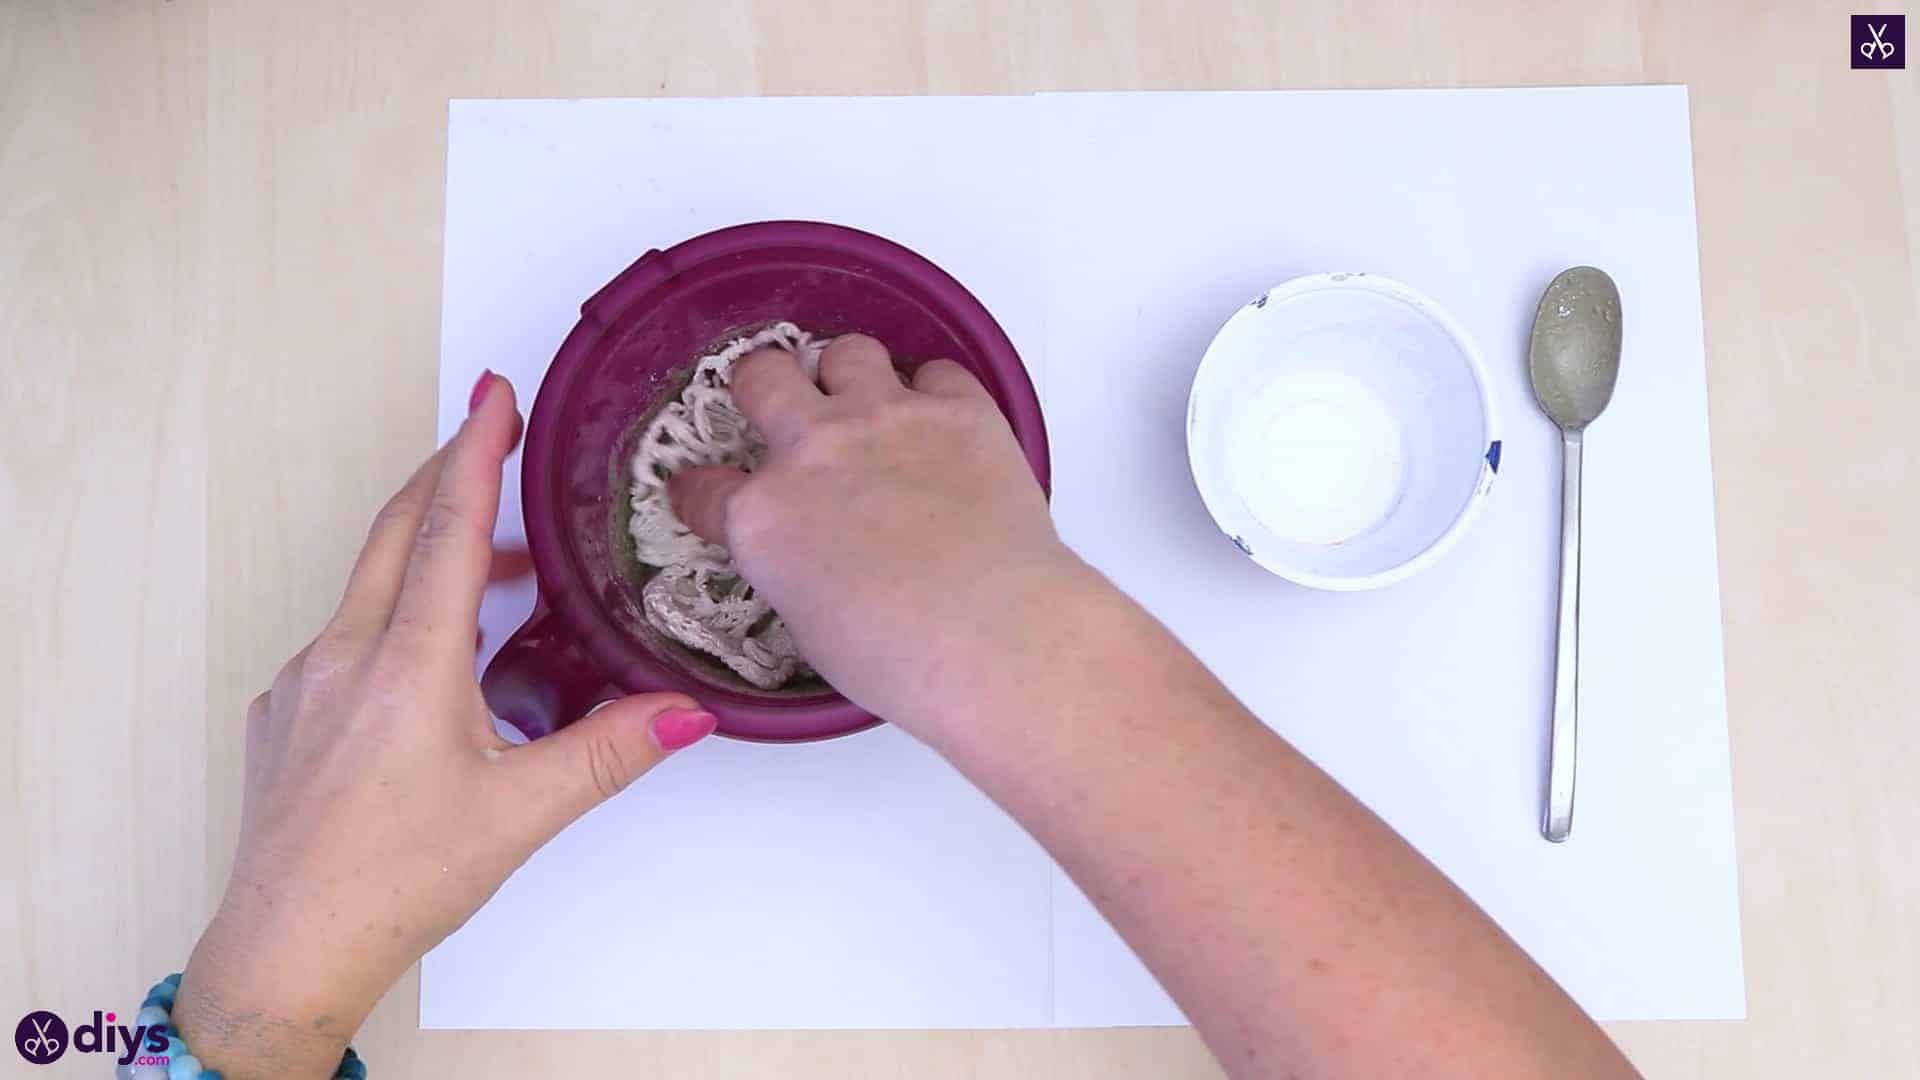 Diy simple concrete doily pot pour